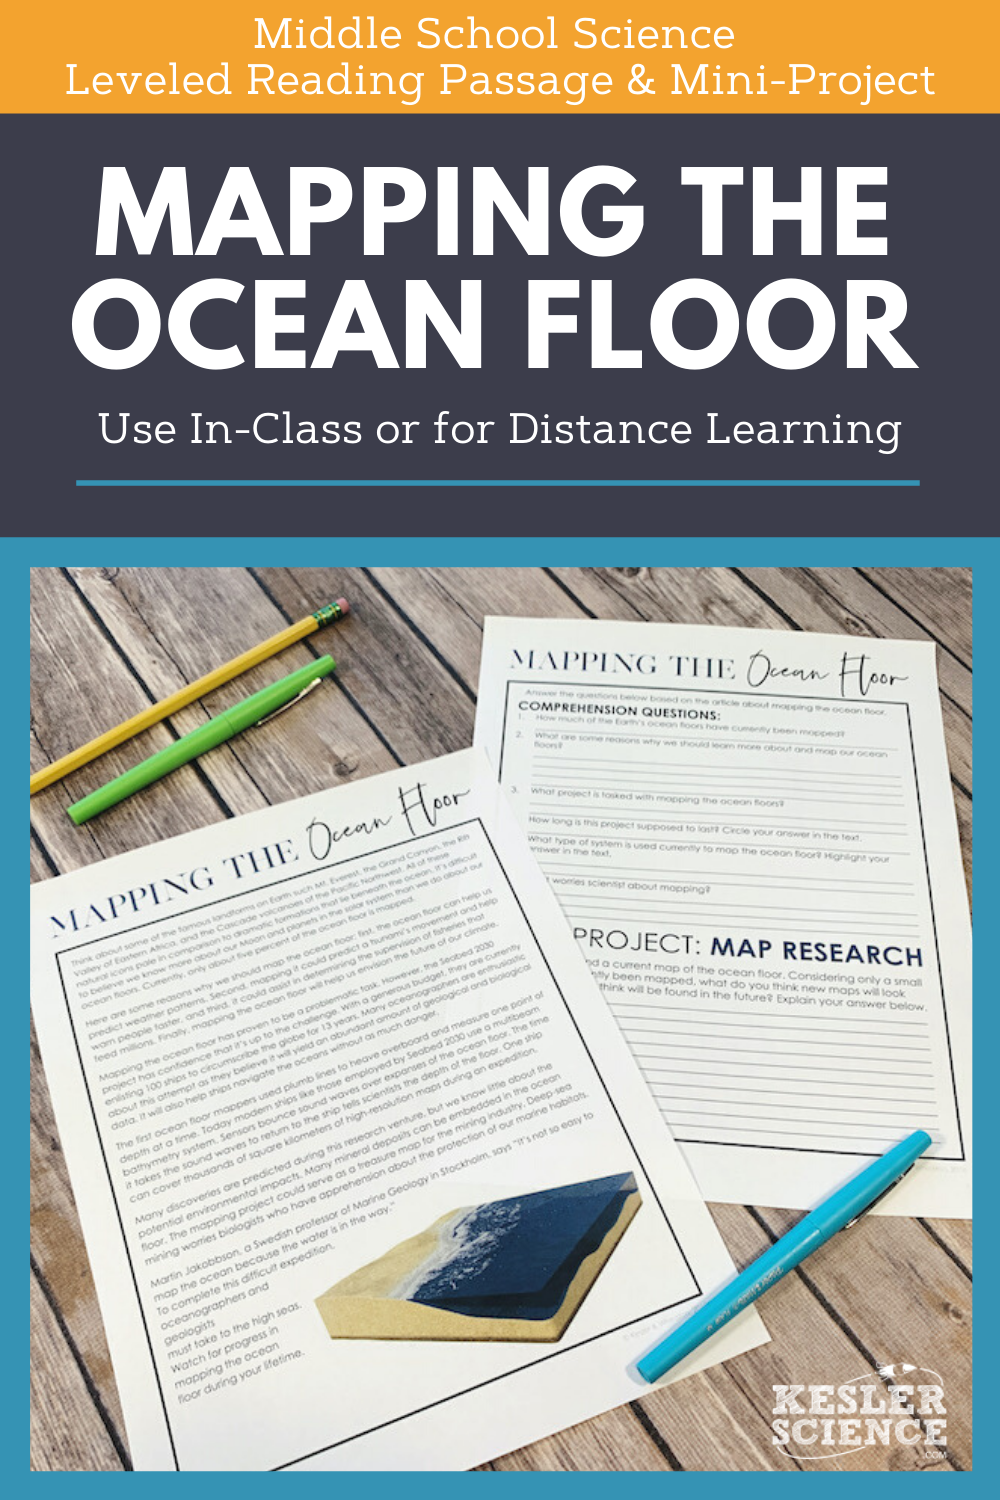 Science Reading Comprehension Mapping The Ocean Floor Distance Learning Science Reading Comprehension Science Reading Middle School Science [ 1500 x 1000 Pixel ]